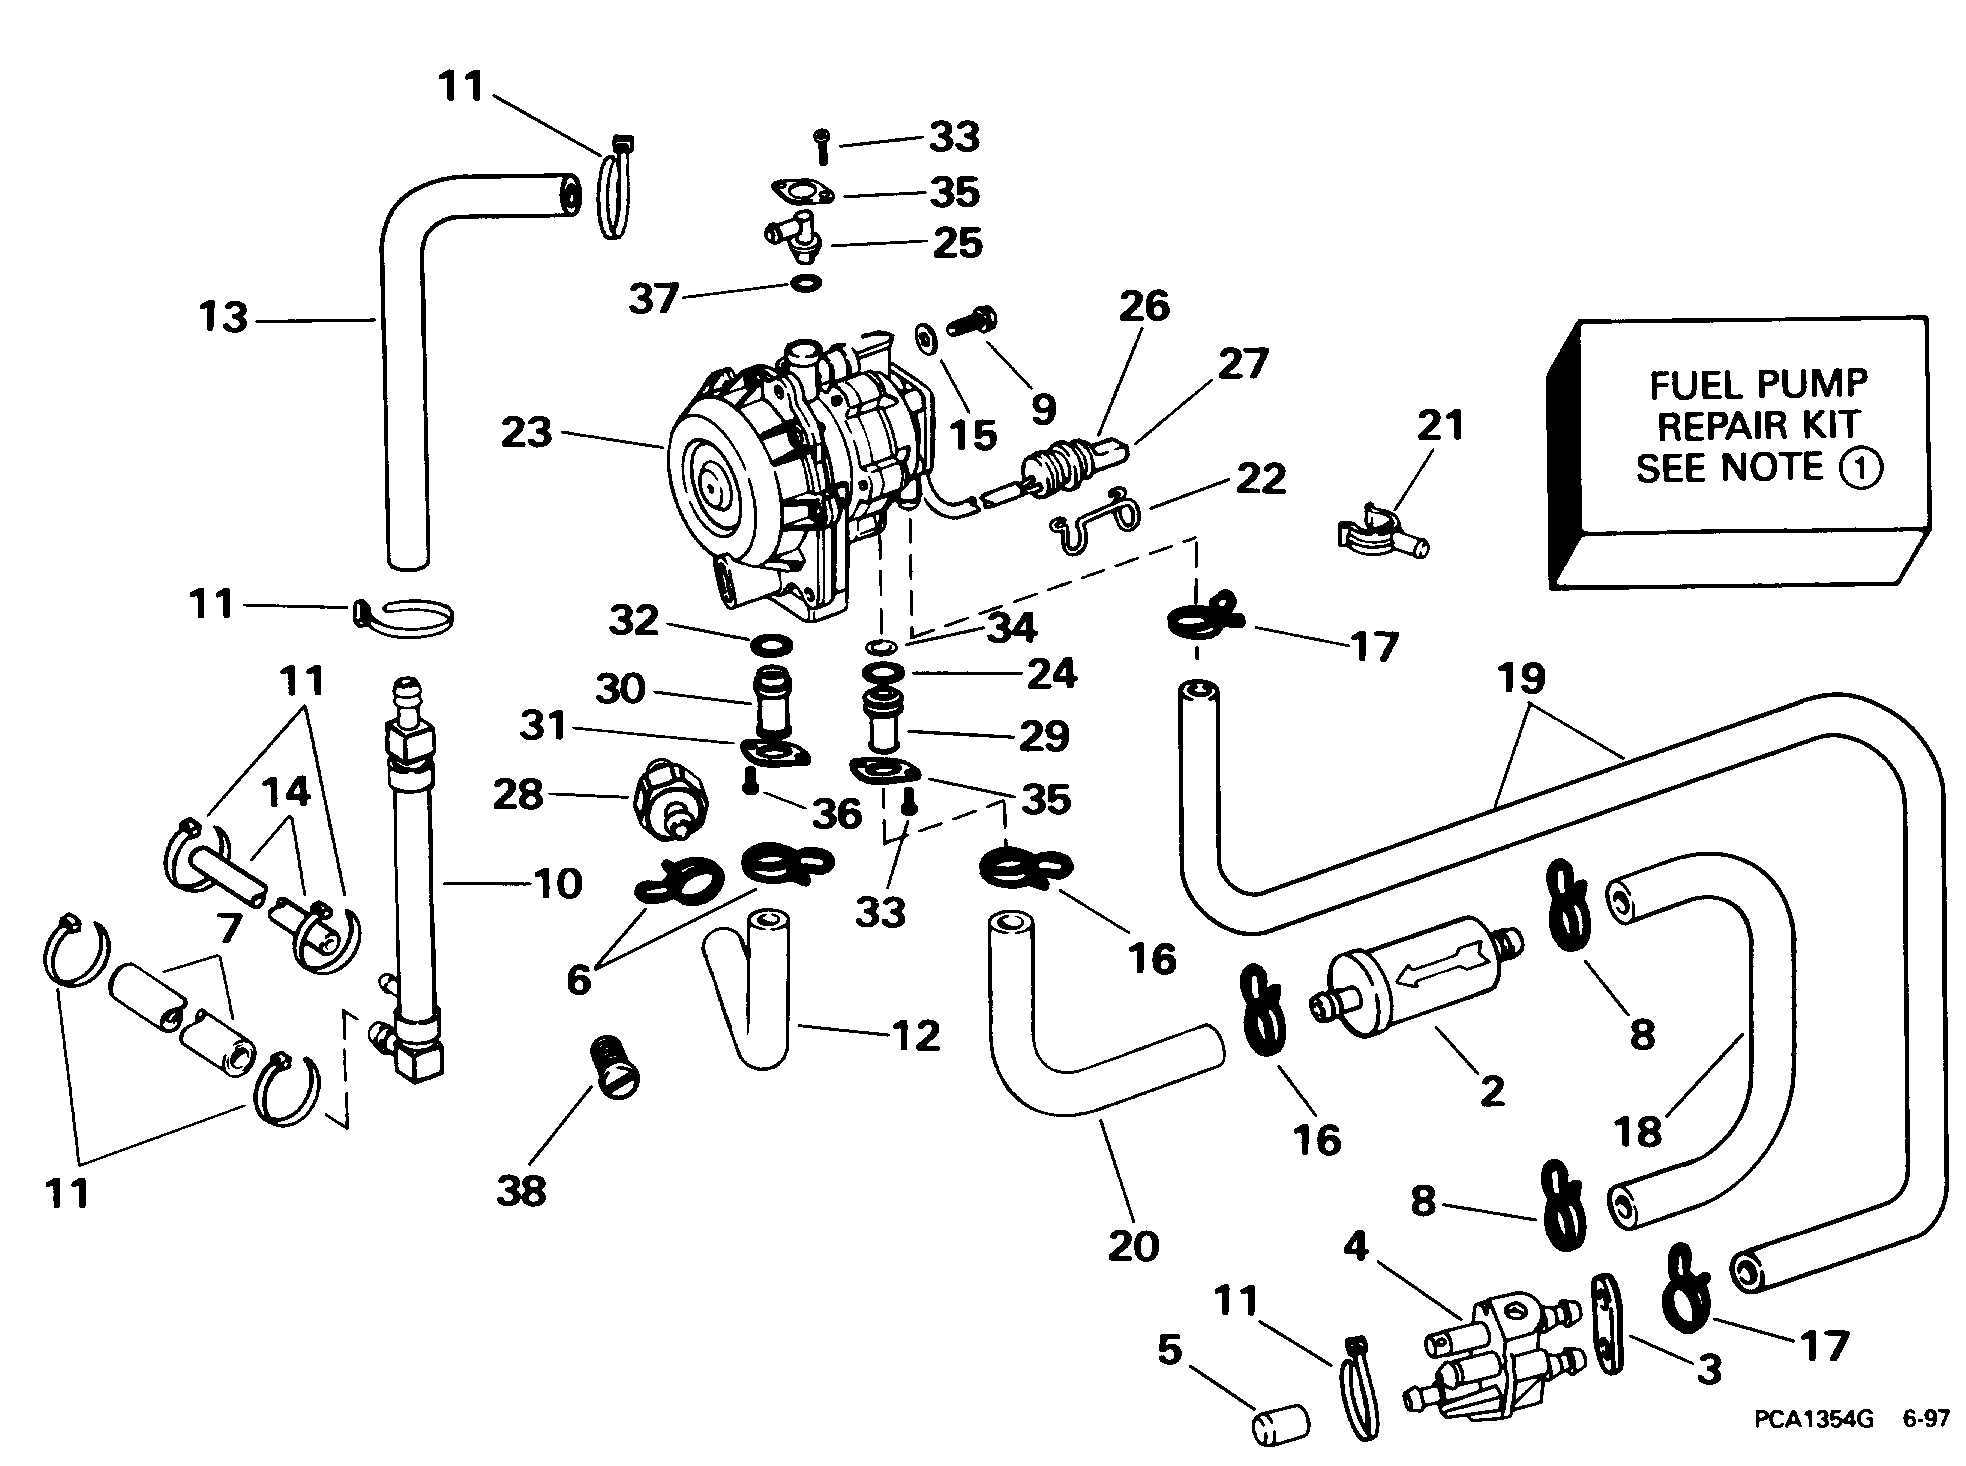 Evinrude Vro Fuel Pump Manual